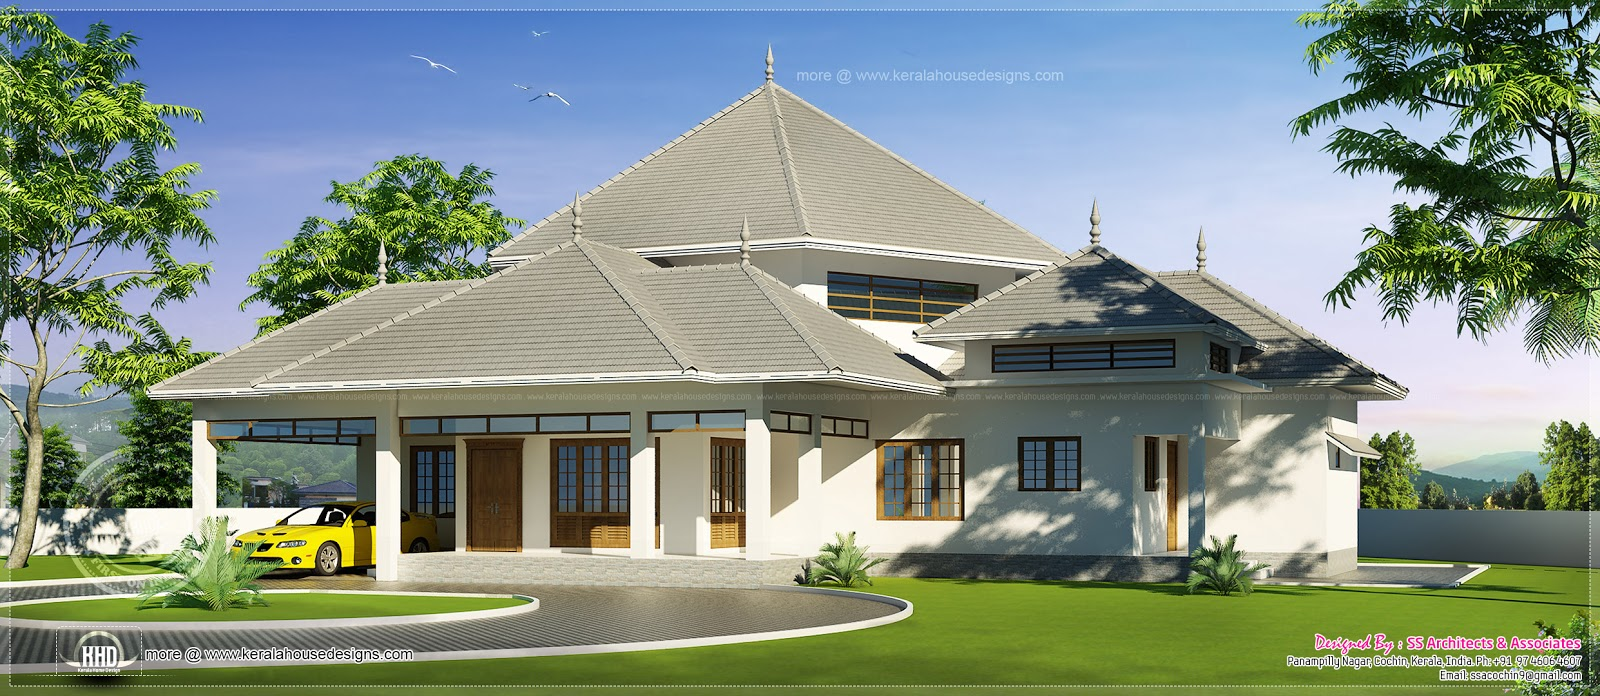 2479 square roof home design keralahousedesigns for Contemporary roof